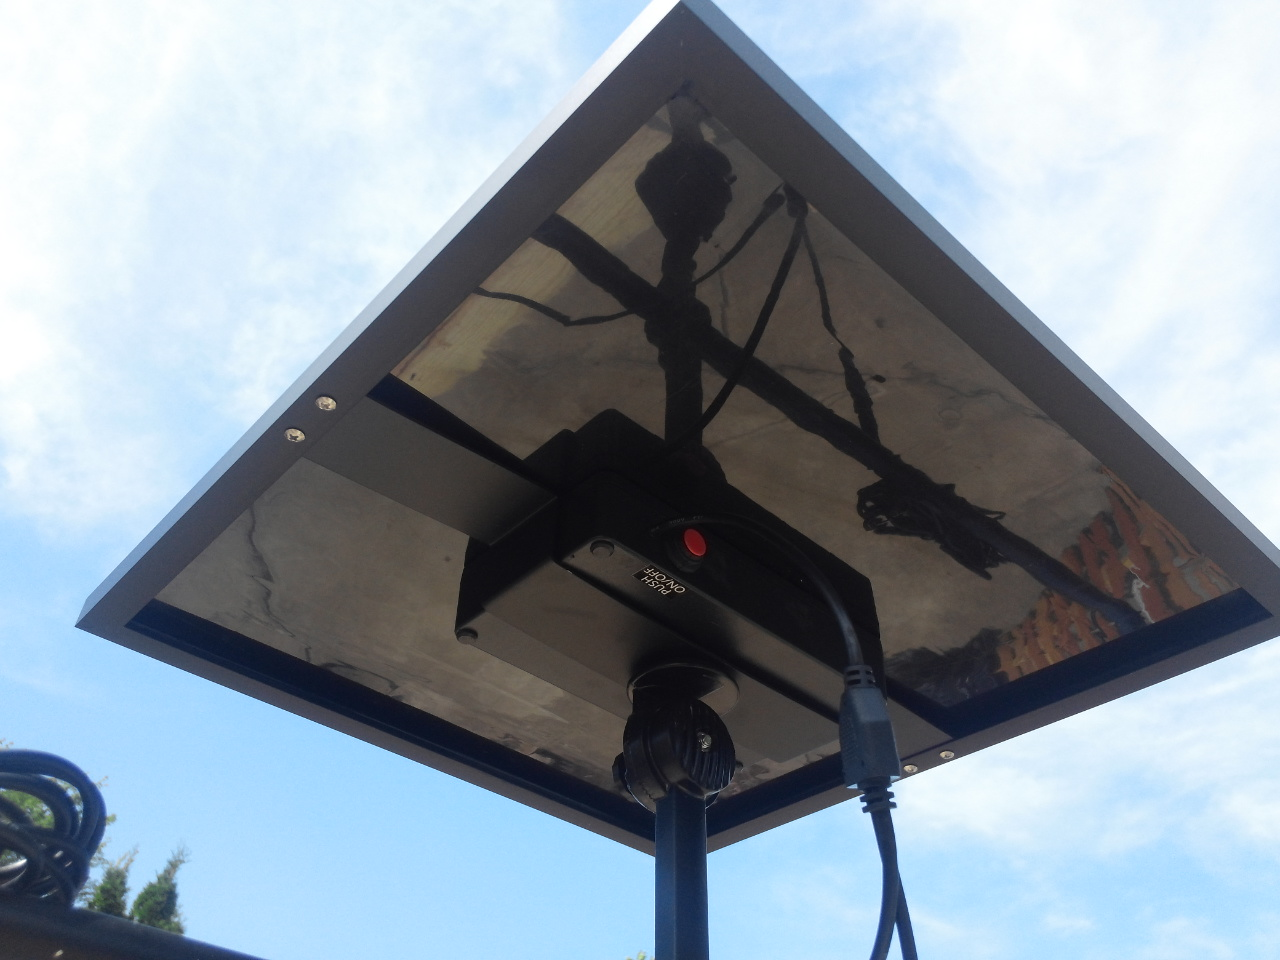 Commercial Solar Billboard Light 2 - Solar Panel